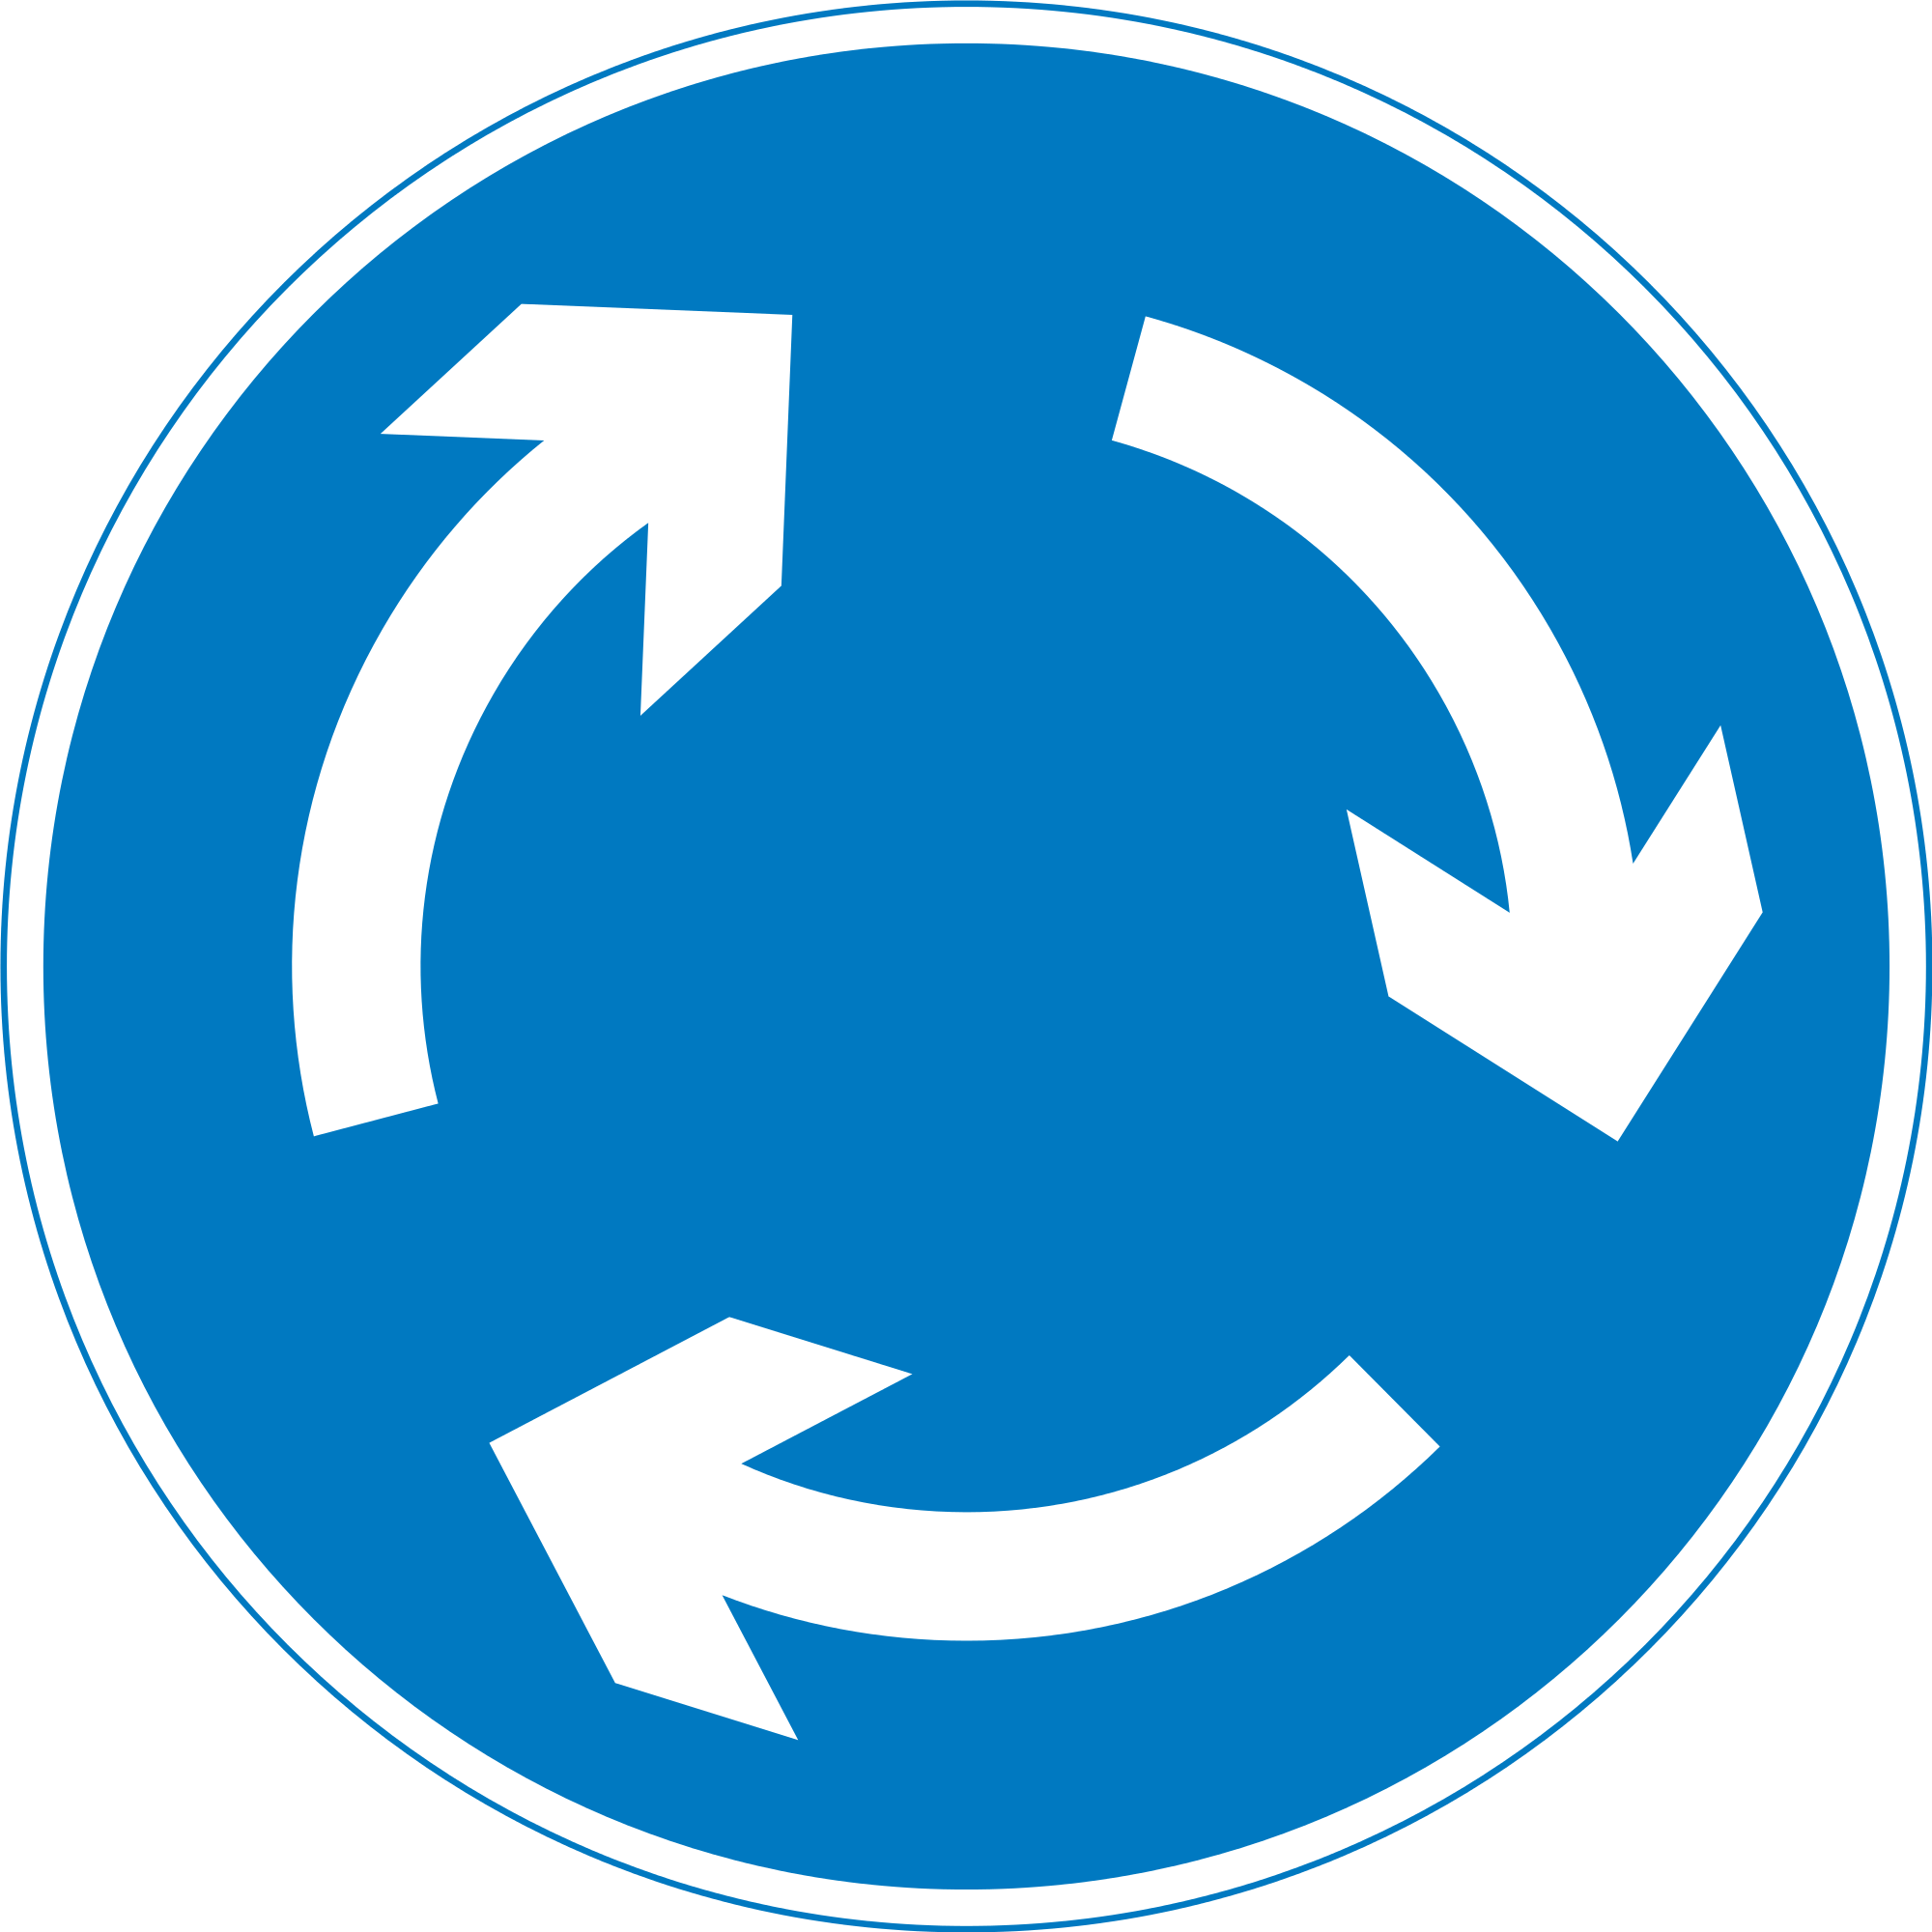 roundabout road sign transparent png stickpng